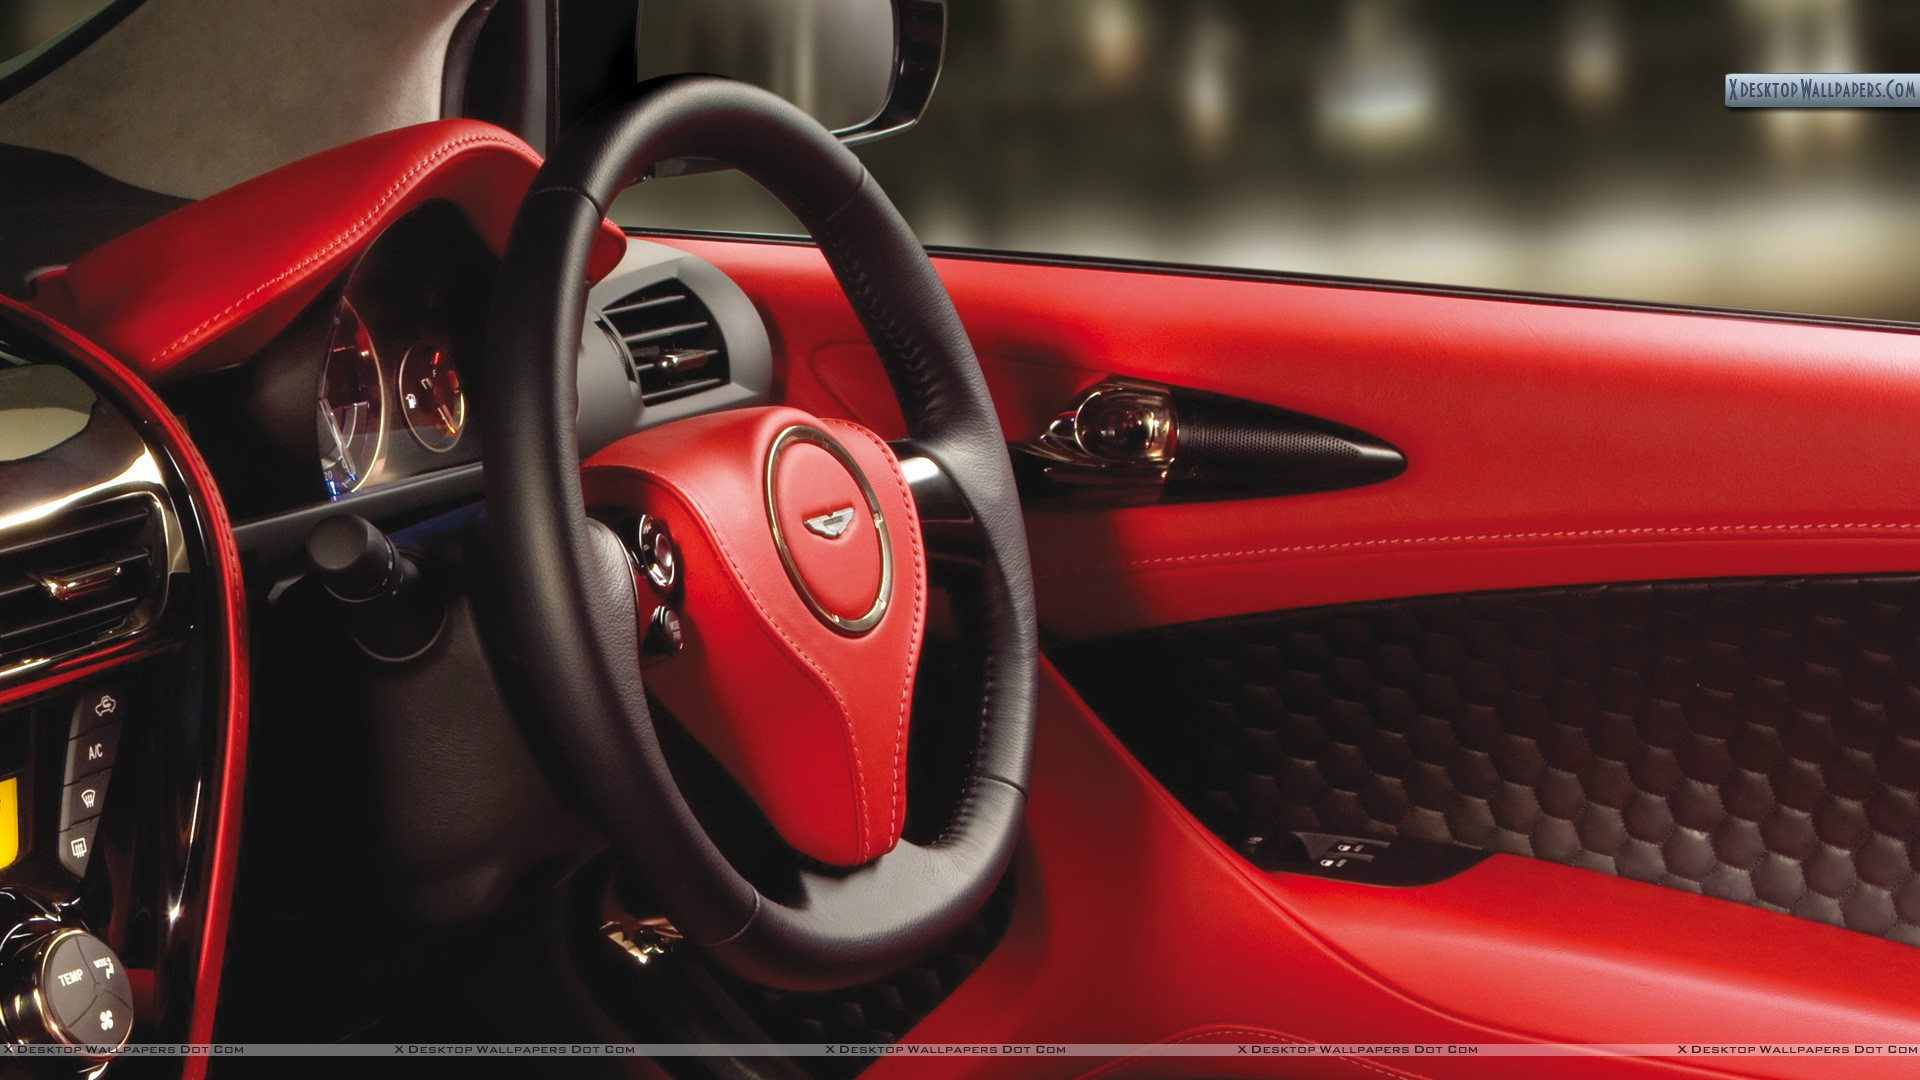 2011 aston martin cygnet interior in red color wallpaper. Black Bedroom Furniture Sets. Home Design Ideas